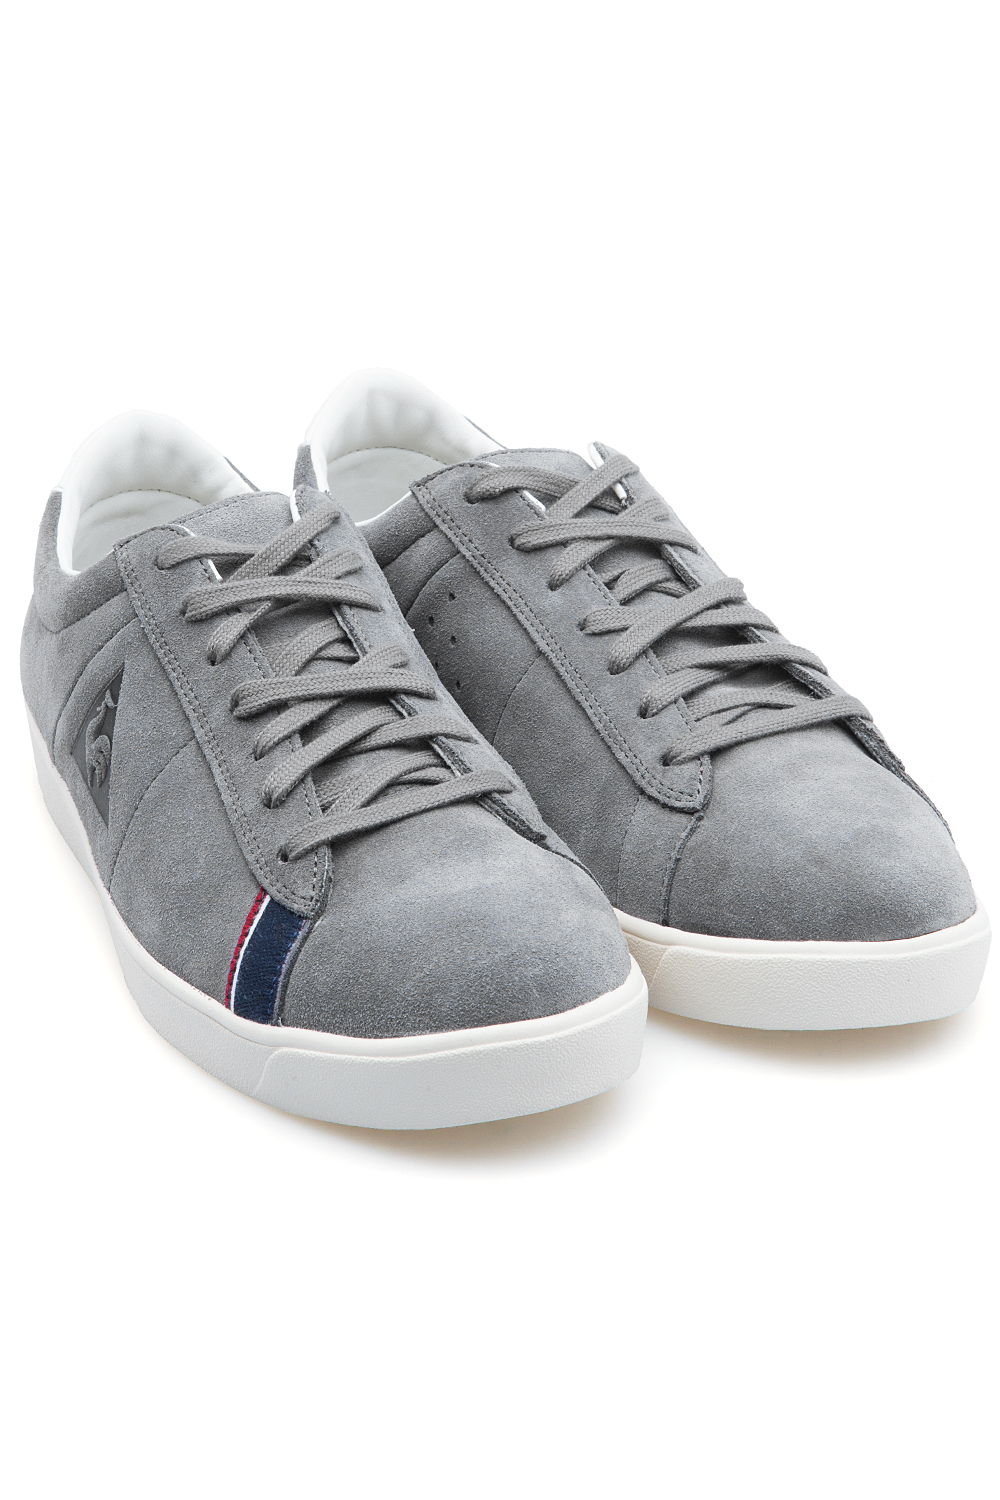 le coq sportif dax suede sneakers grey 365ist. Black Bedroom Furniture Sets. Home Design Ideas